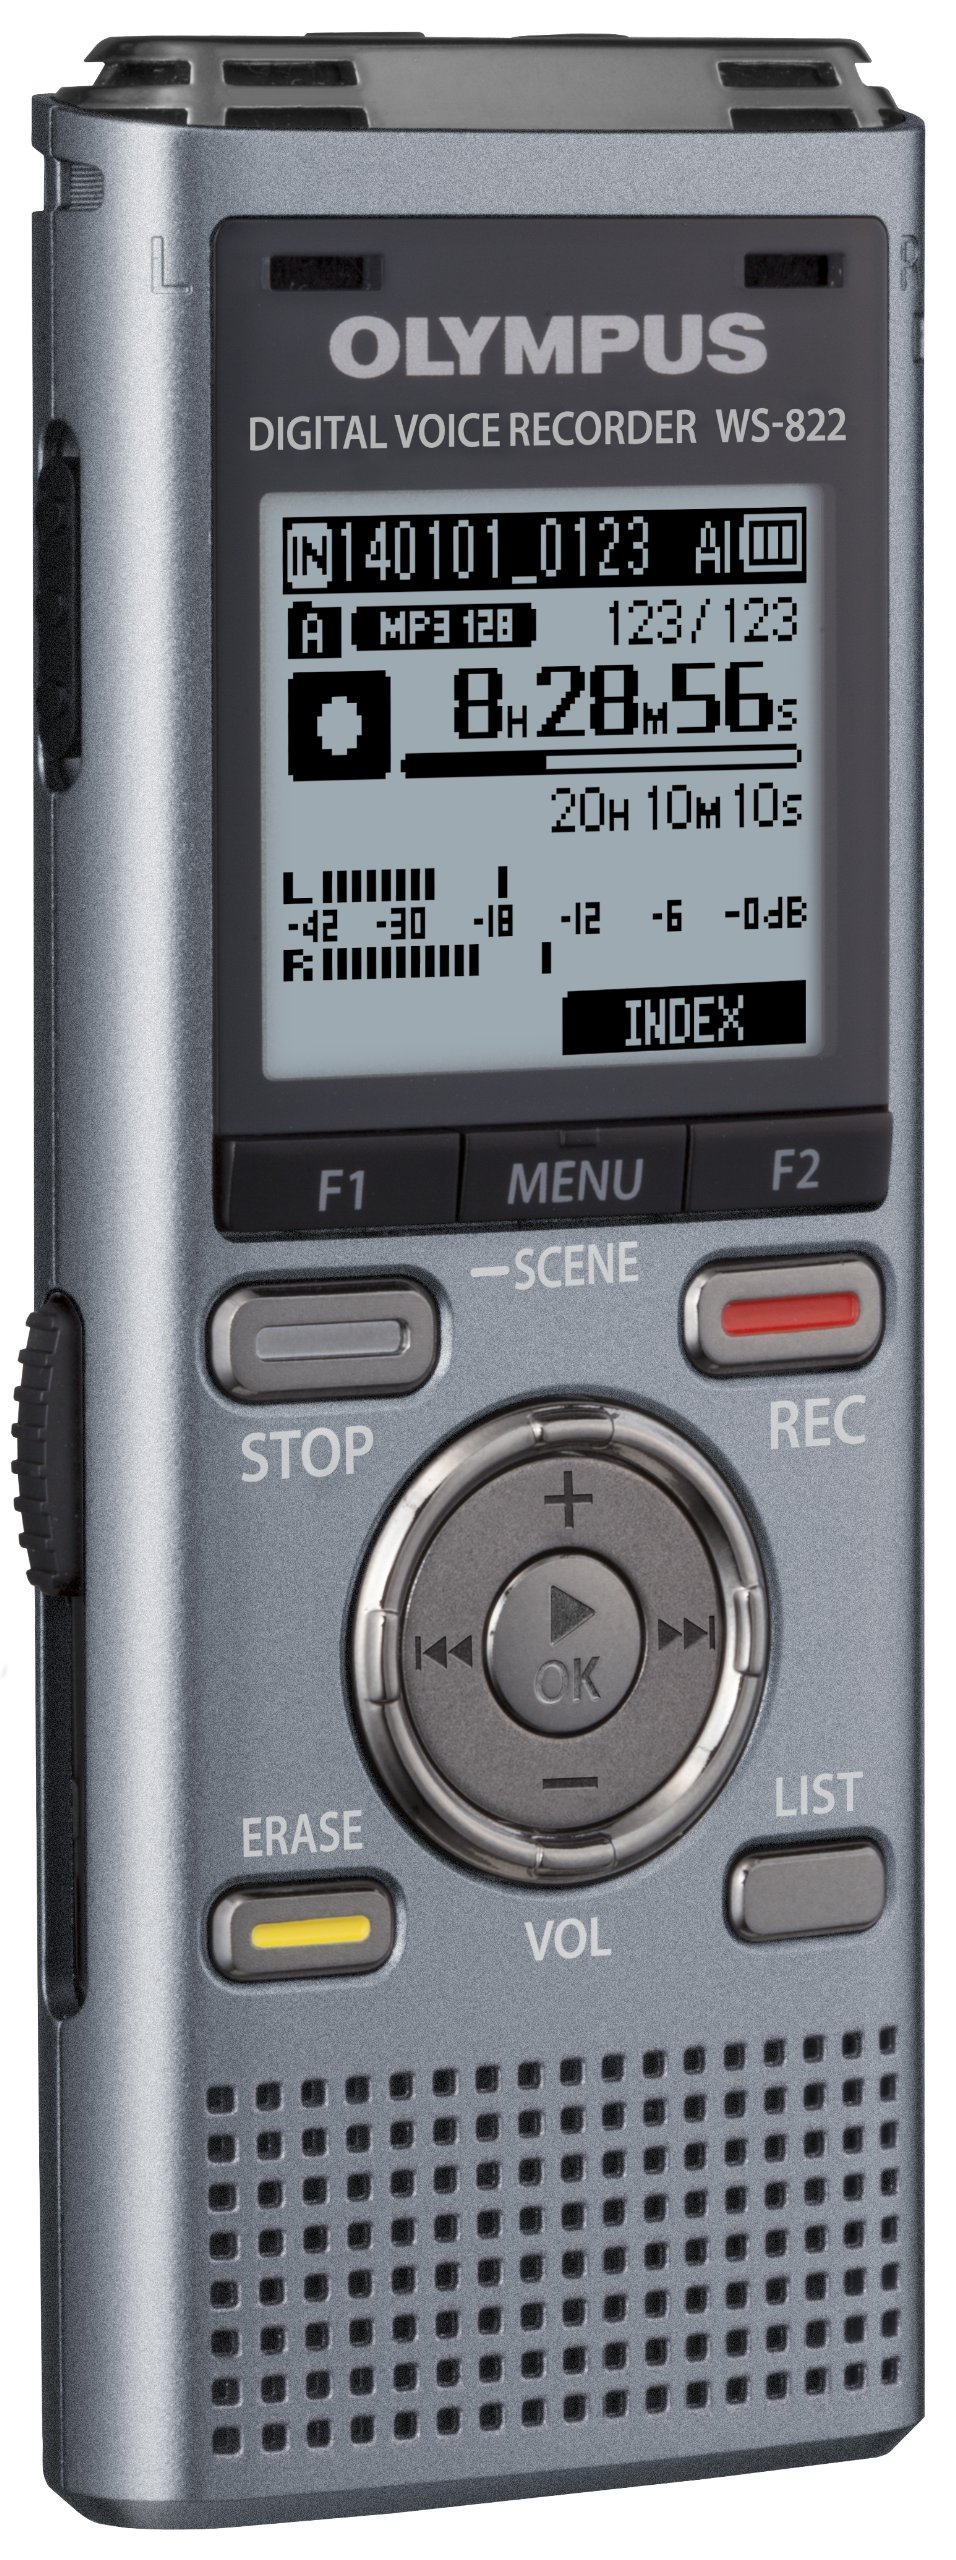 Olympus WS-822 GMT Voice Recorders with 4 GB Built-in-Memory by Olympus (Image #3)